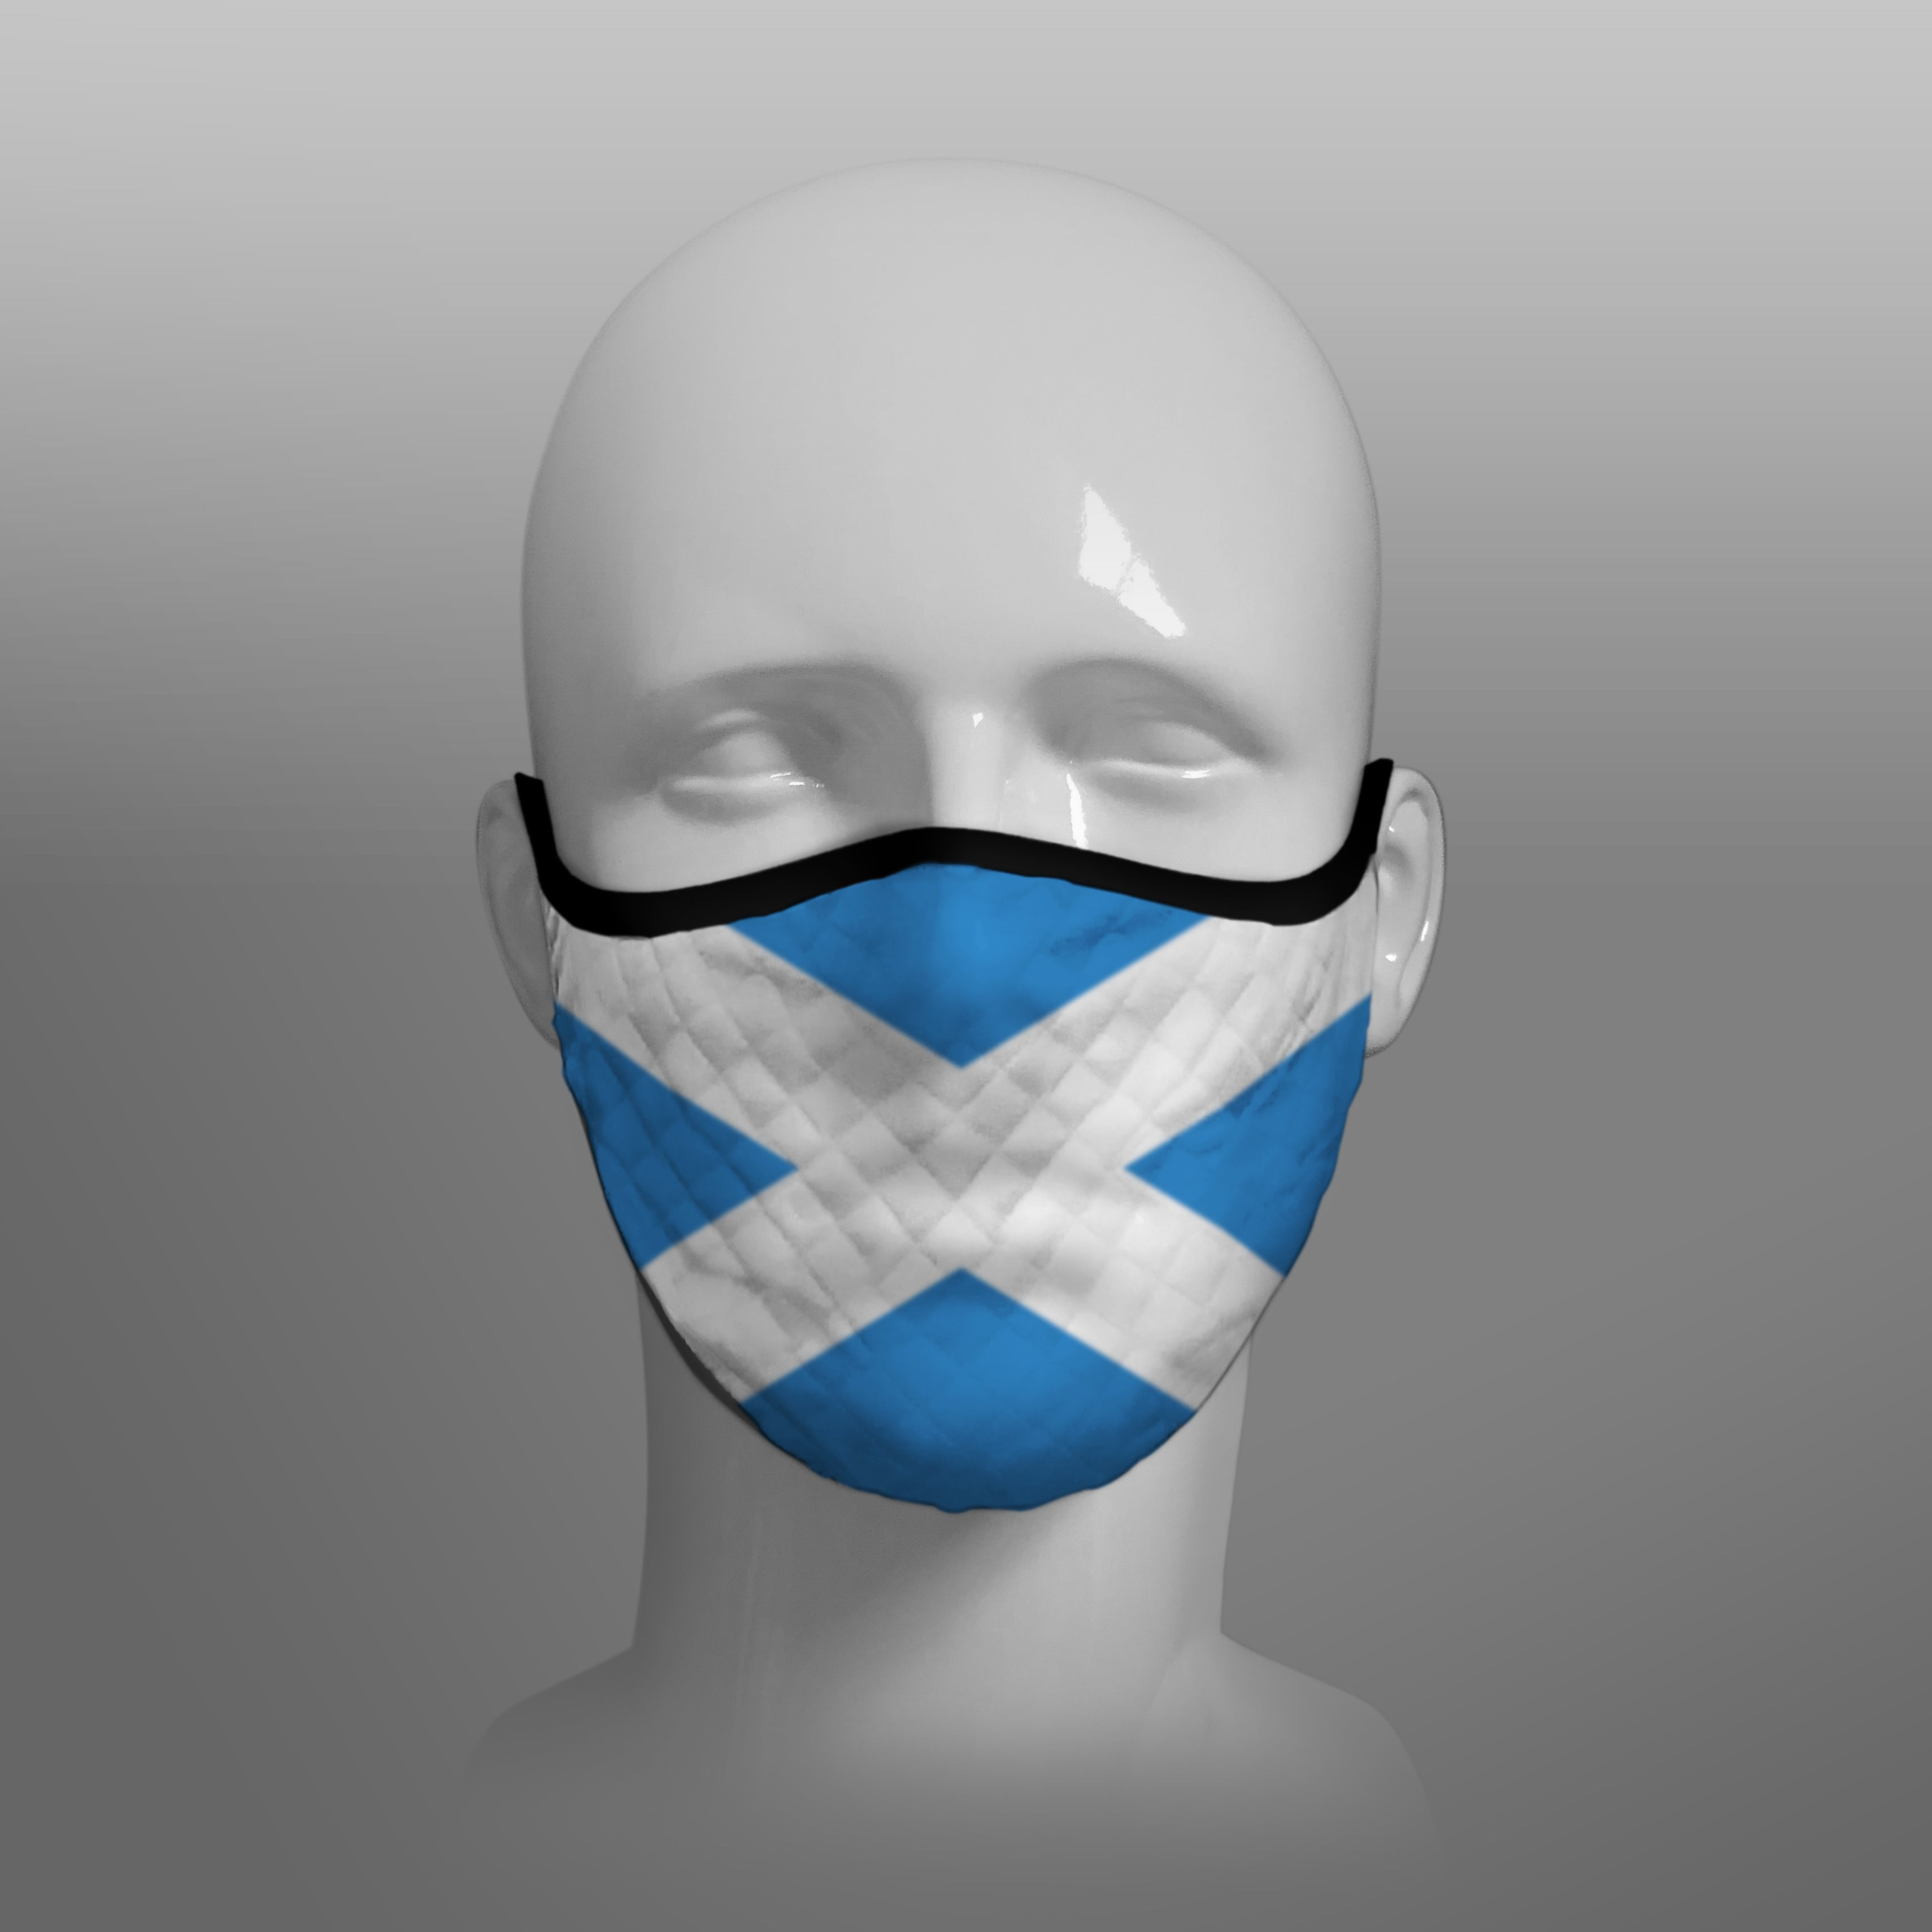 Contoured Face Mask - face covering - Nicola Sturgeon - Scottish Scotland Scots Saltire St Andrew's Cross - by Steven Patrick Sim the Tartan Artisan - Stevie Tartan Guy - medium